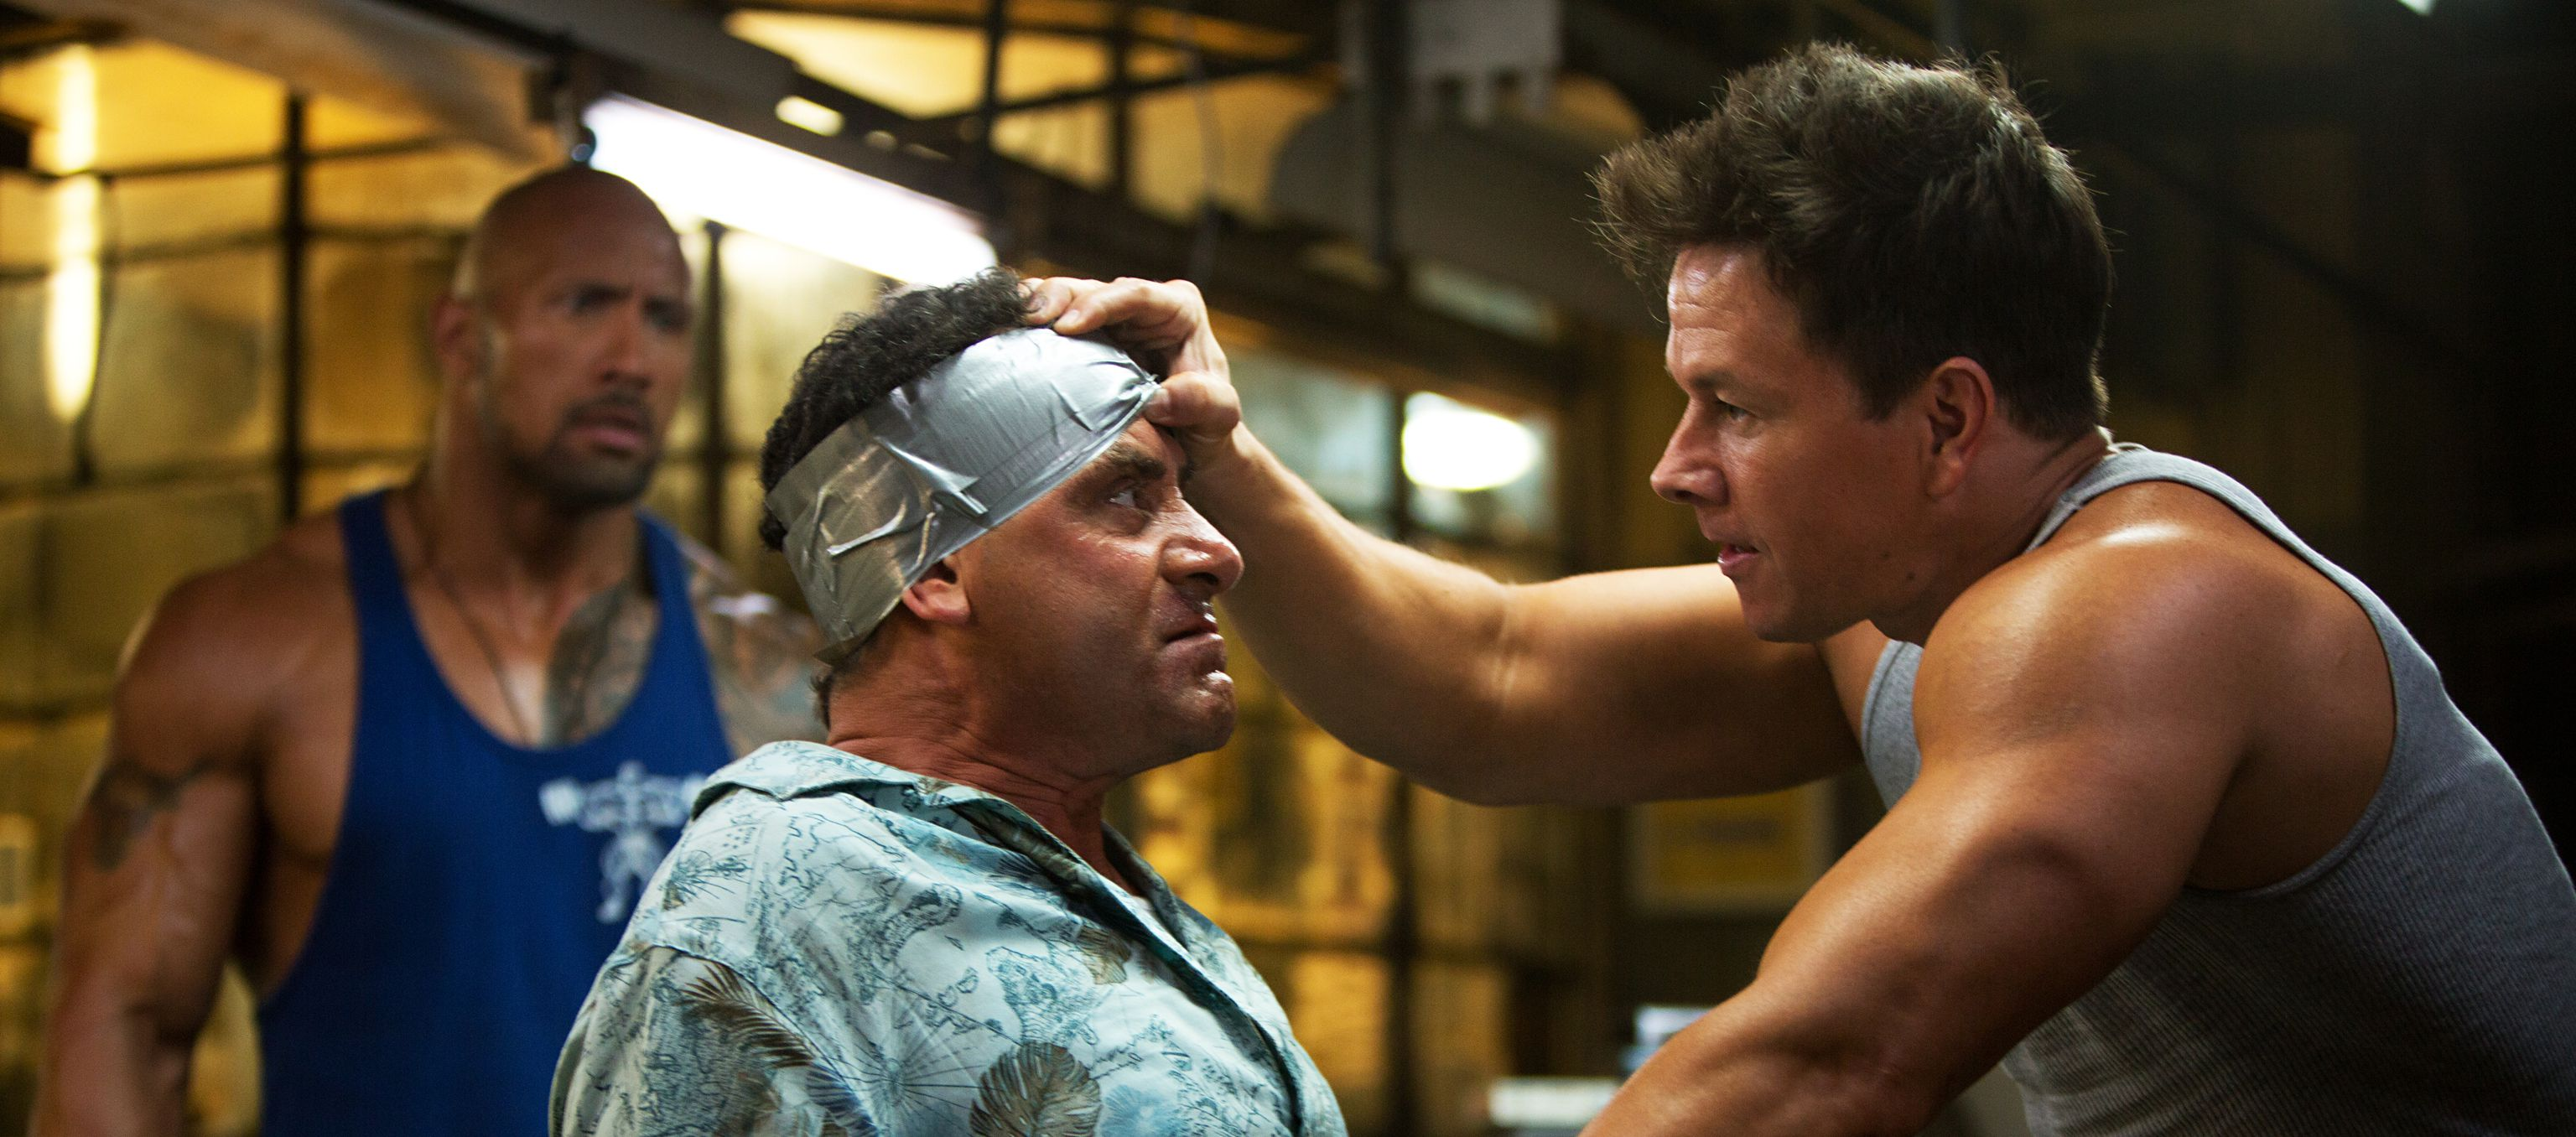 An image from Pain & Gain